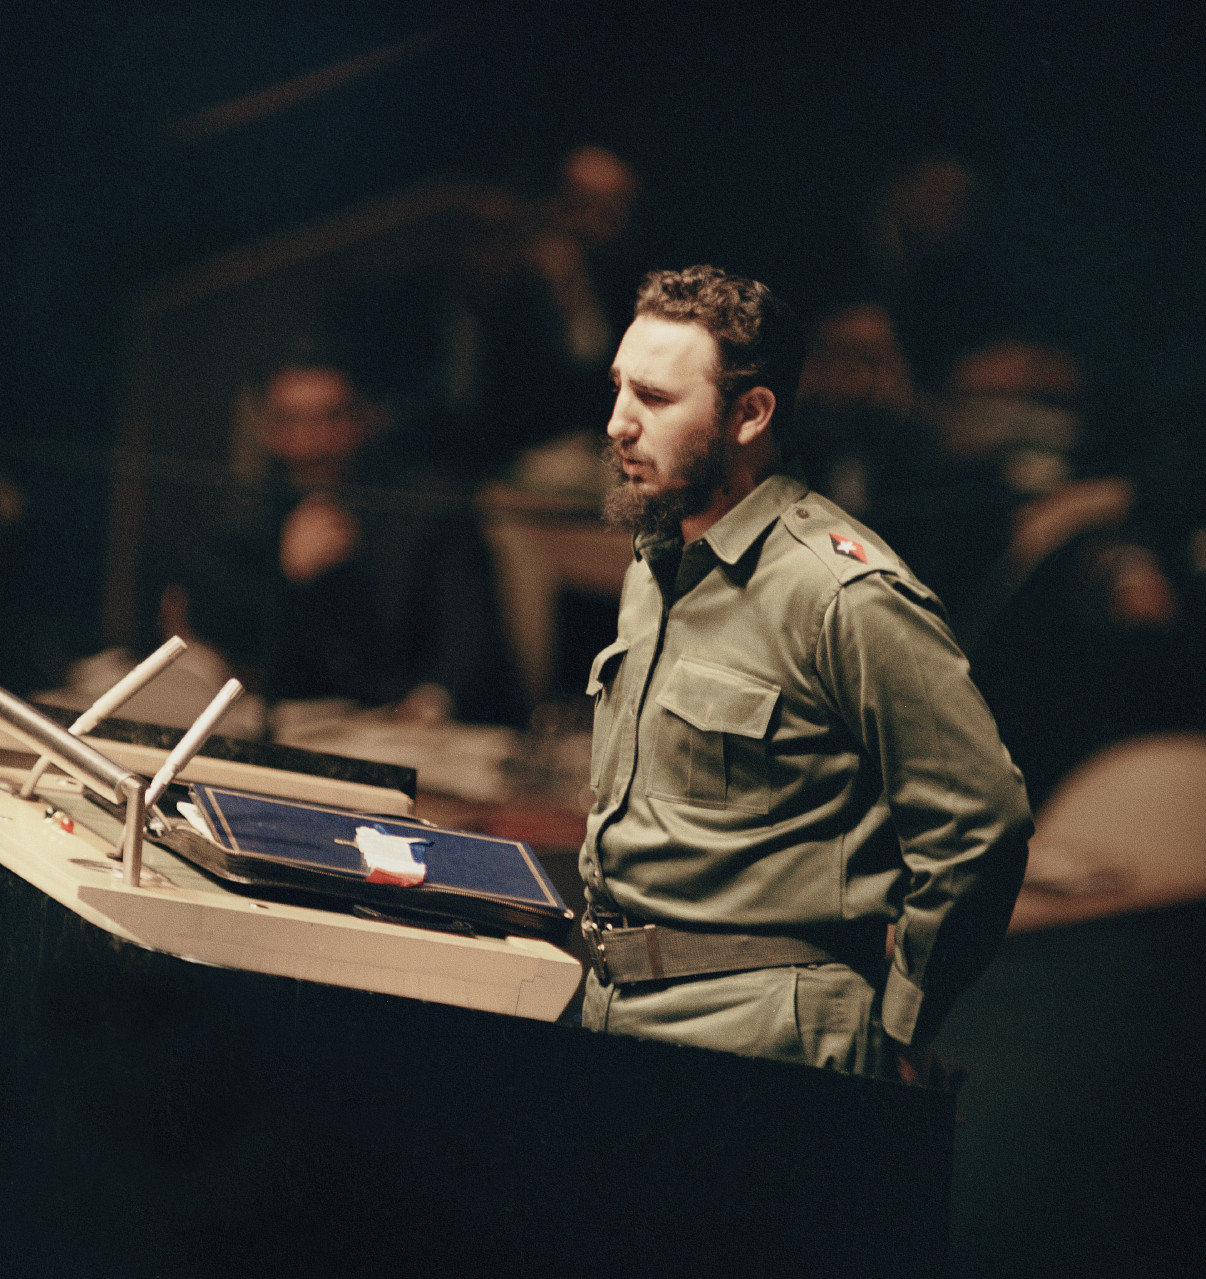 fidel castro in cuban missile crisis history essay Cuban missile crisis essays:  history essay paper  the united states' renewed attempts to overthrow fidel castro following the failed bay of pigs invasion in.